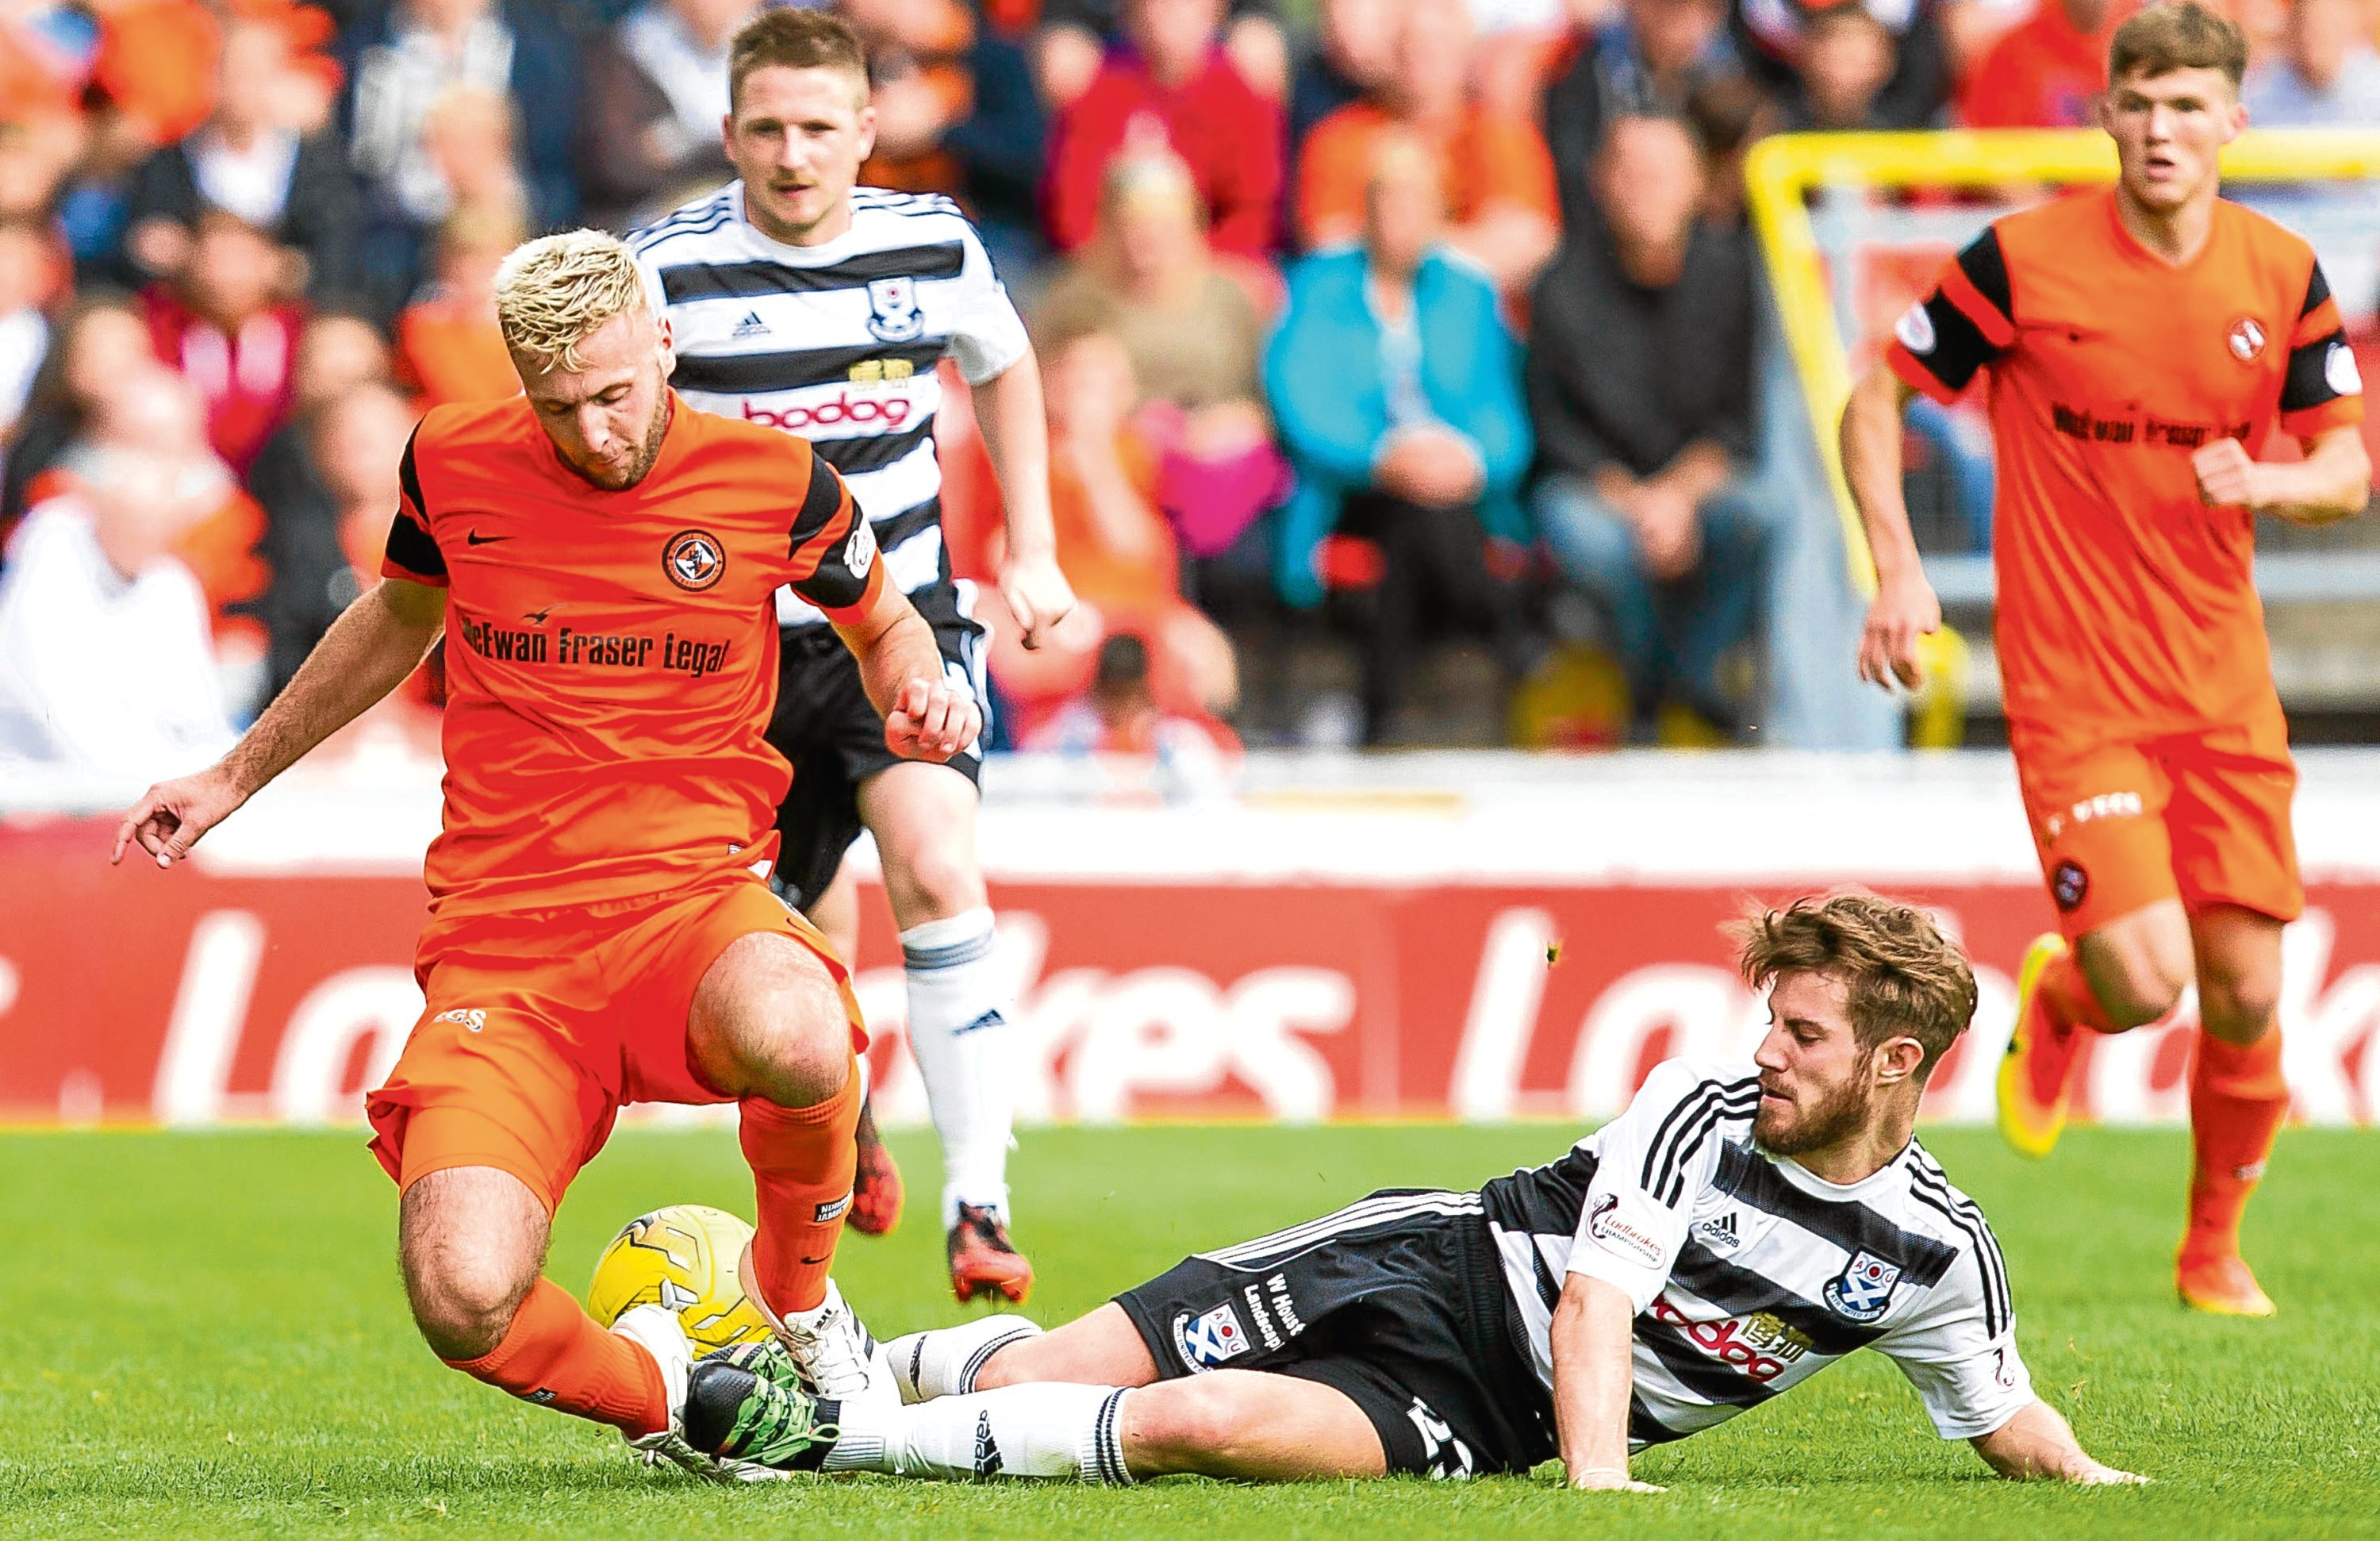 Lewis Toshney is tackled by Ayr United's Ross Docherty